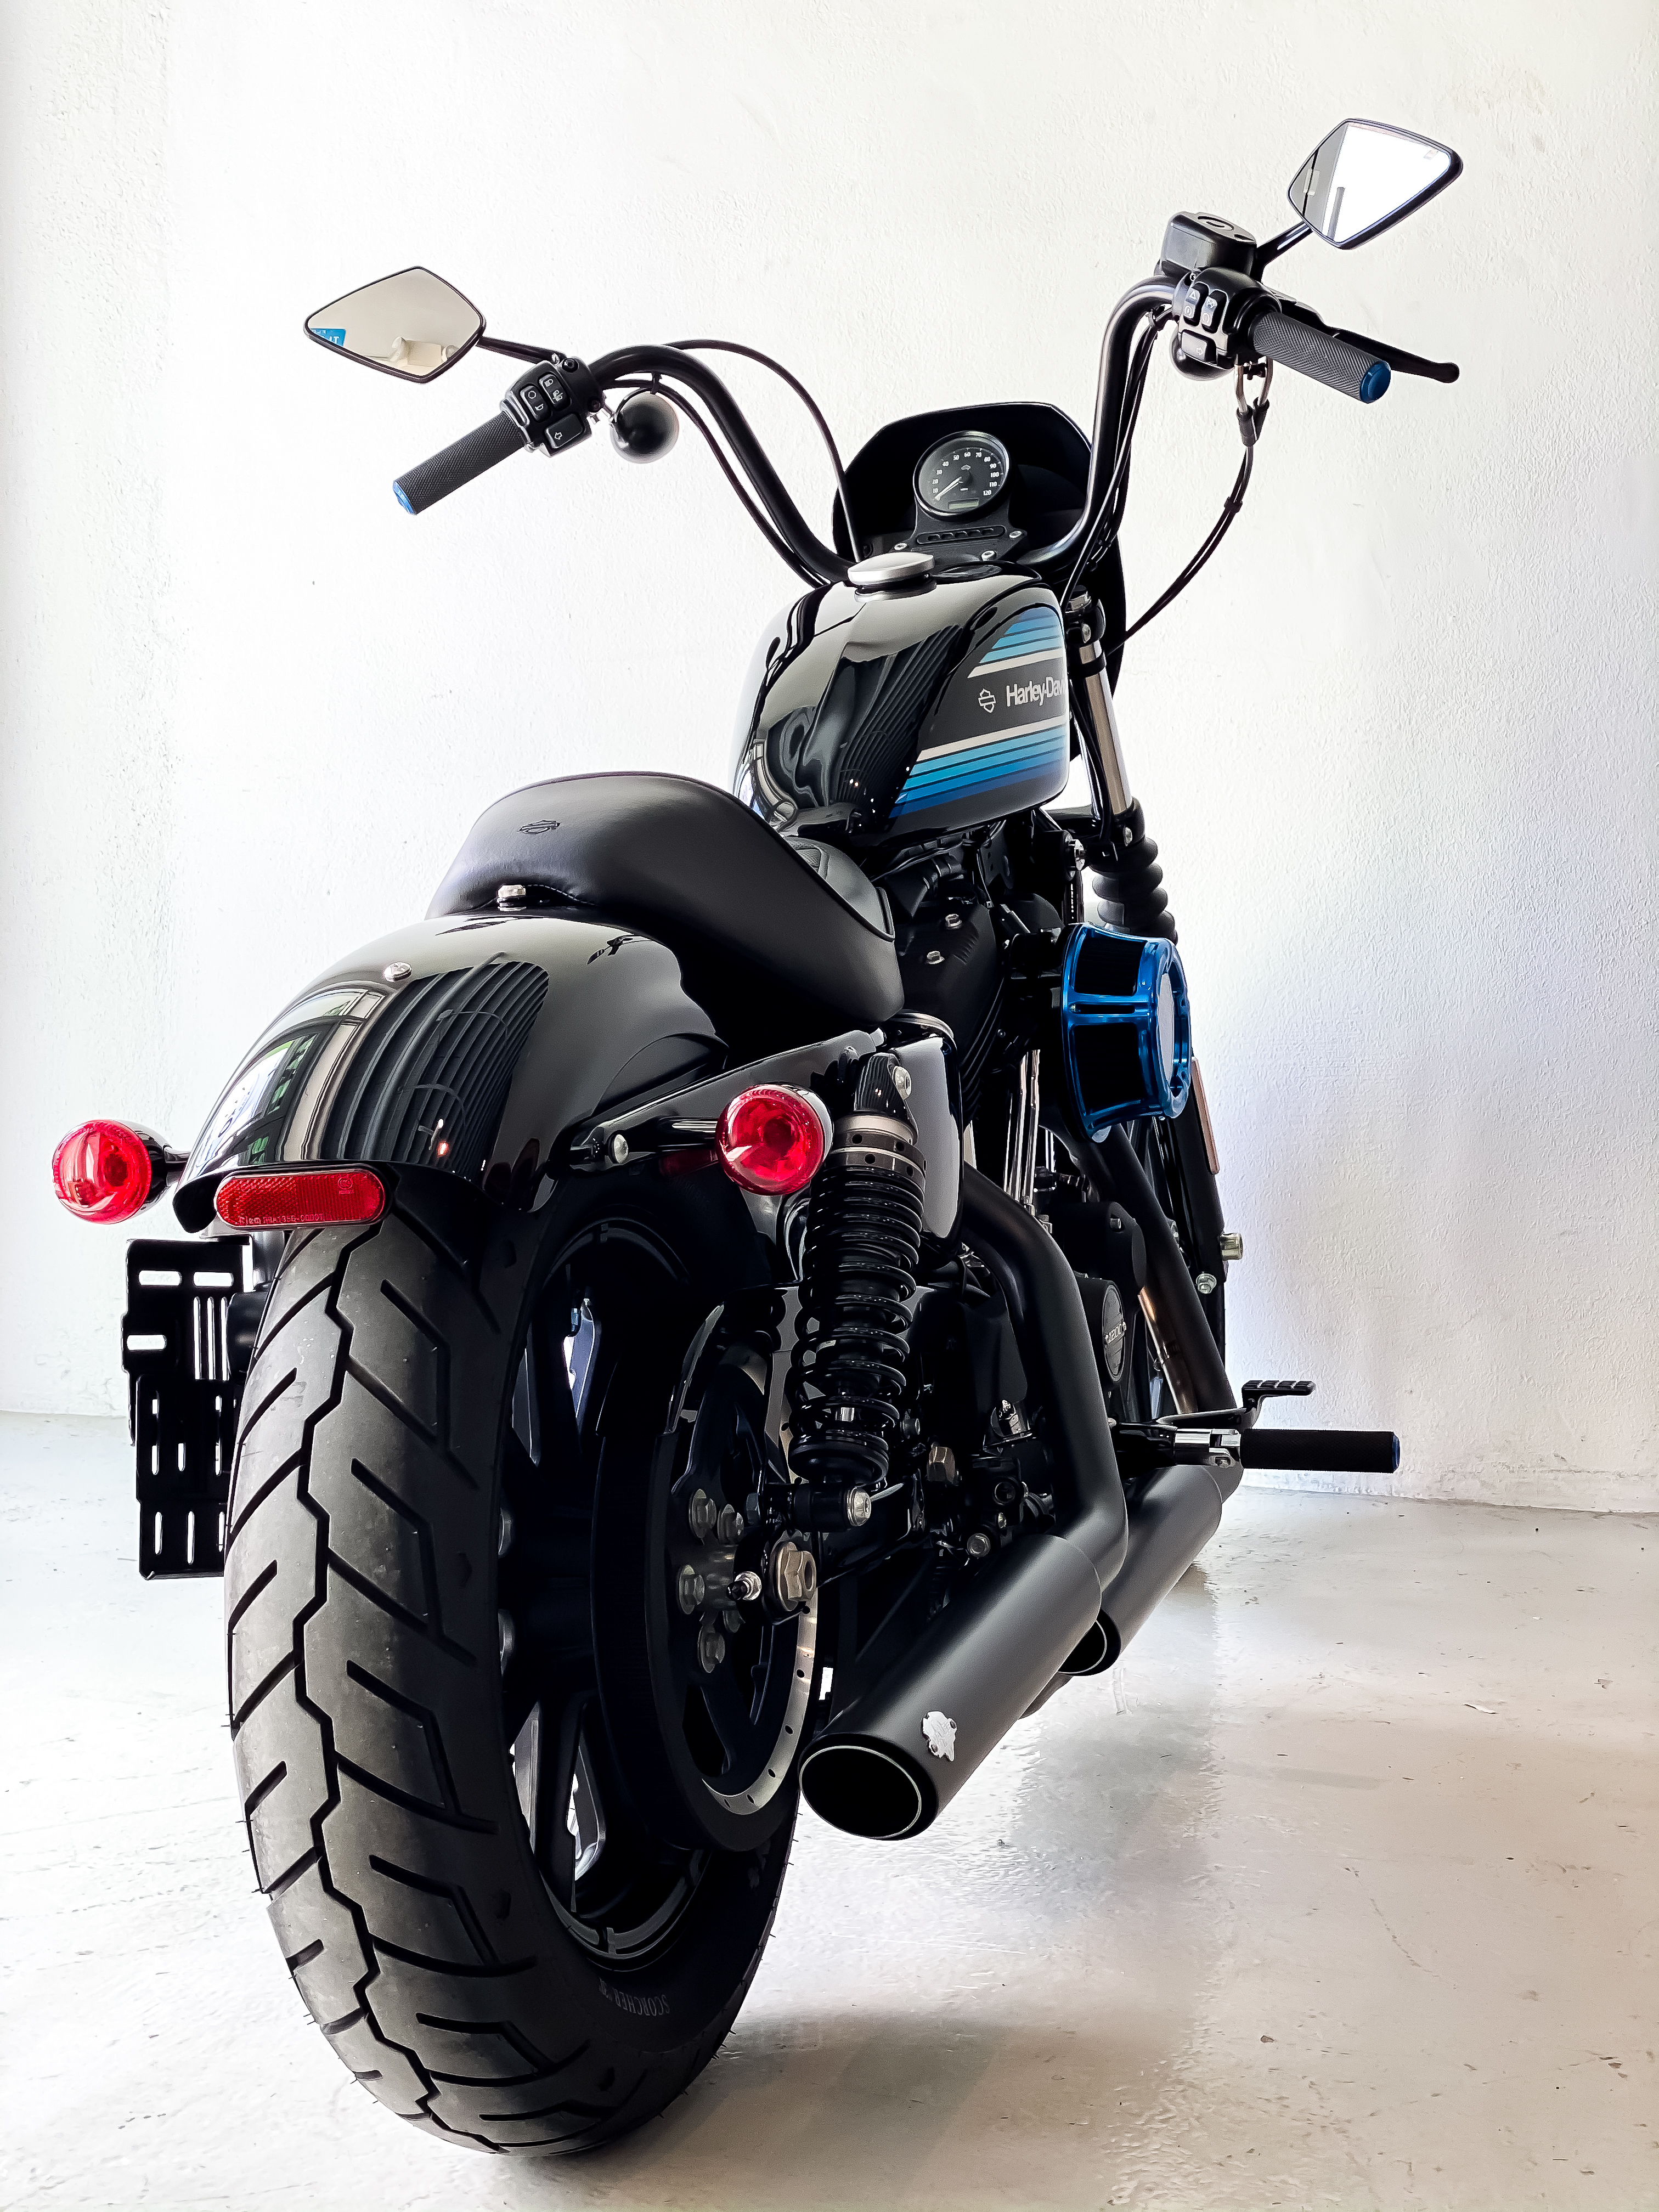 2019 Harley Davidson XL1200NS Iron 1200 | Wynwood Moto Garage